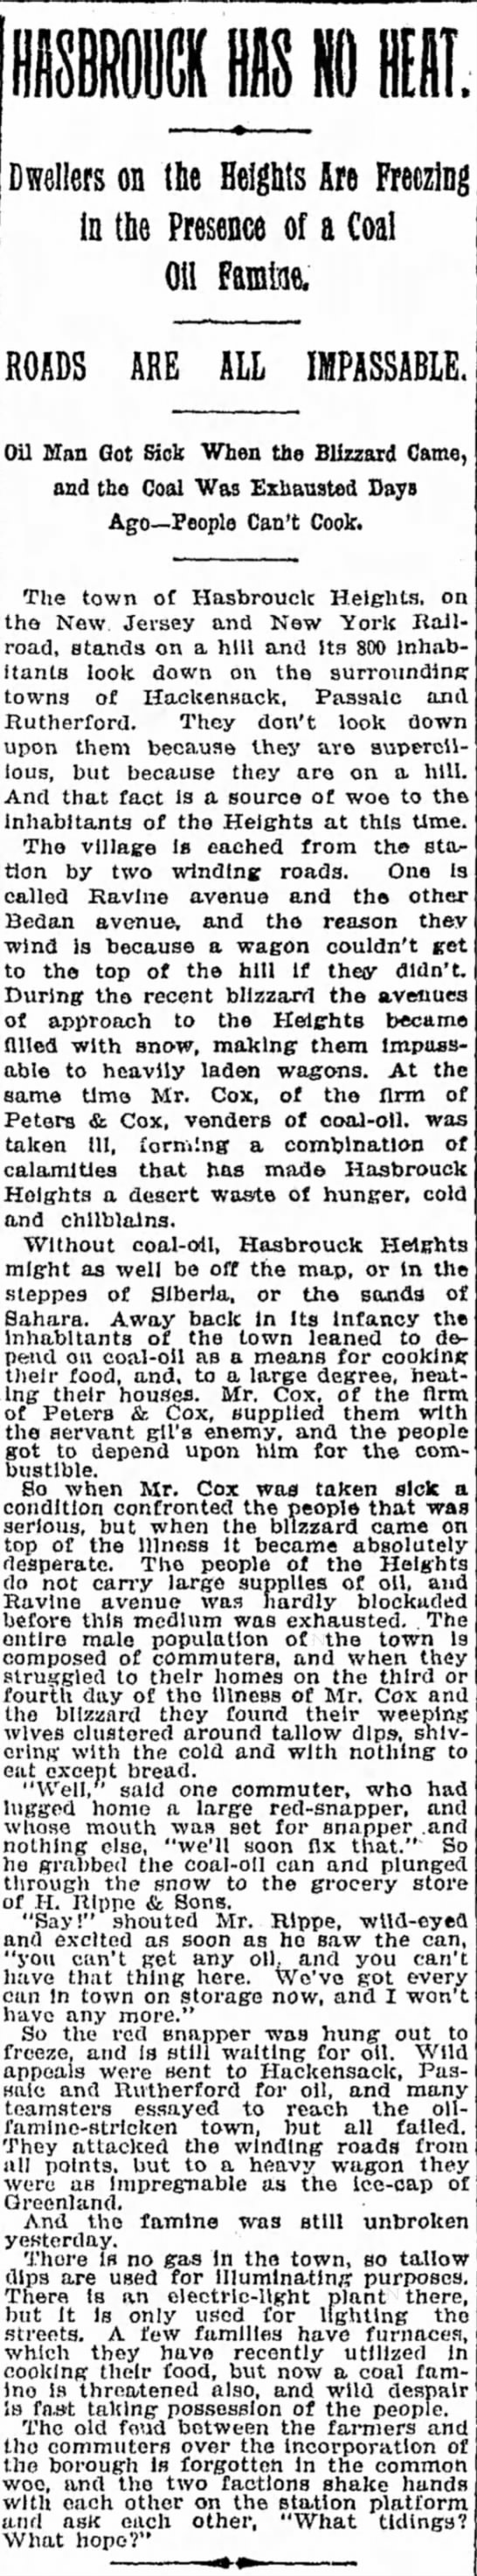 Feb 17, 1895 - Dwellers on {be Heights Are Freezing in tbe...